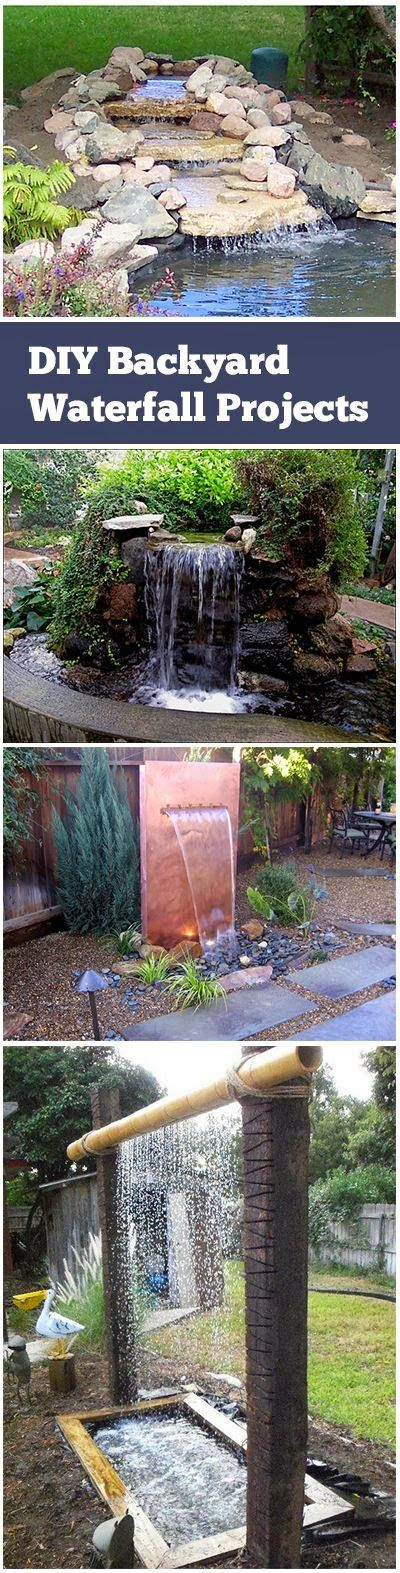 Diy garden waterfalls carthage water features and backyard for Diy ponds and waterfalls